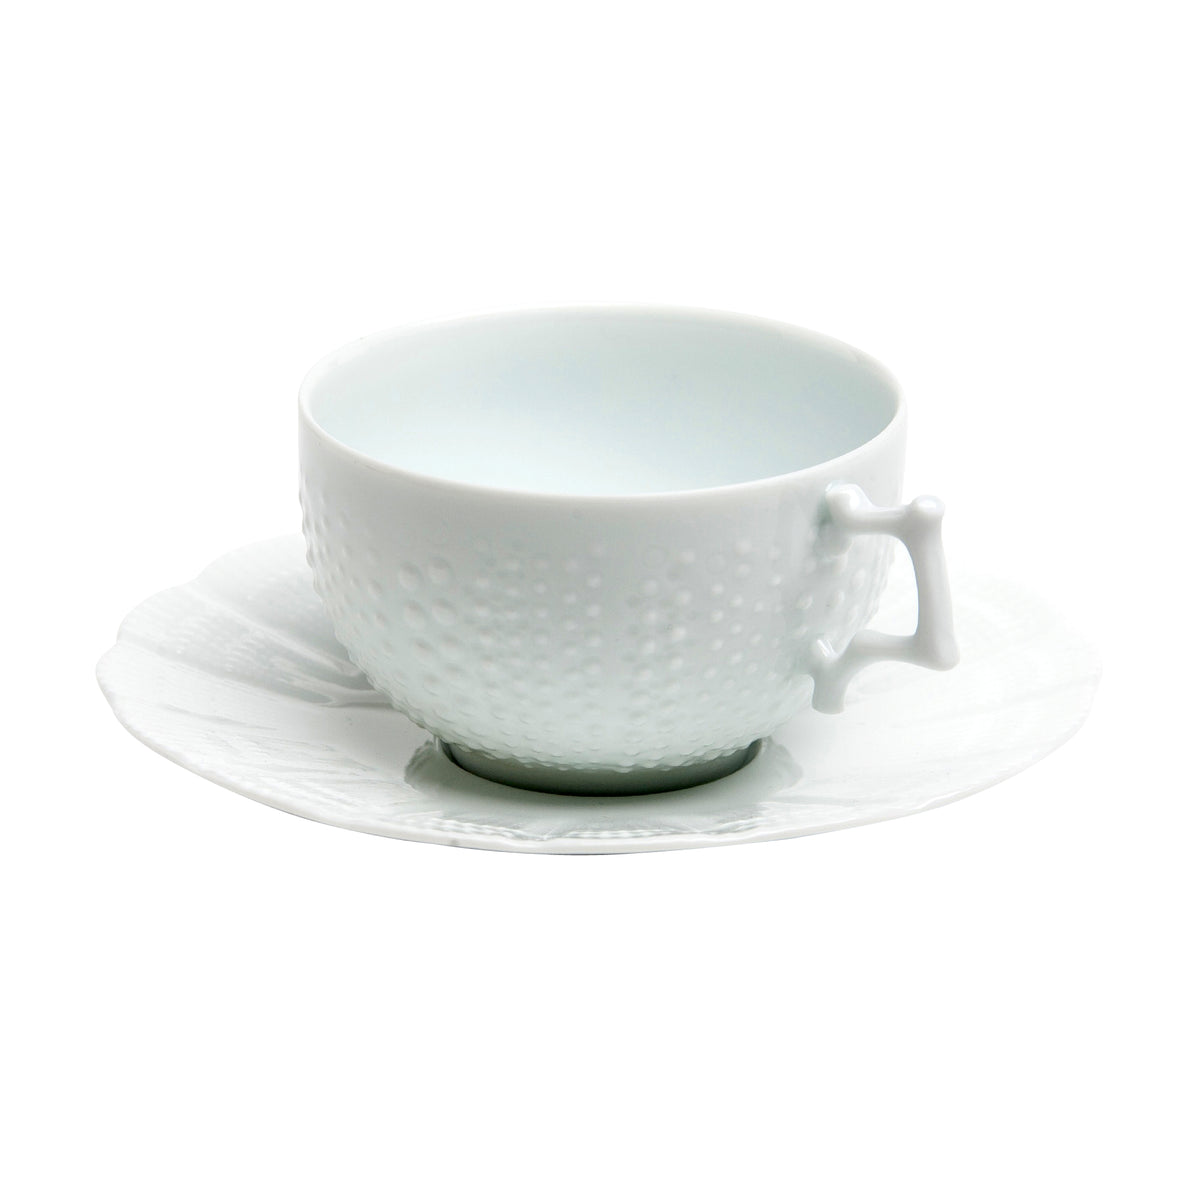 Corail Porcelain Tea Cup and Saucer